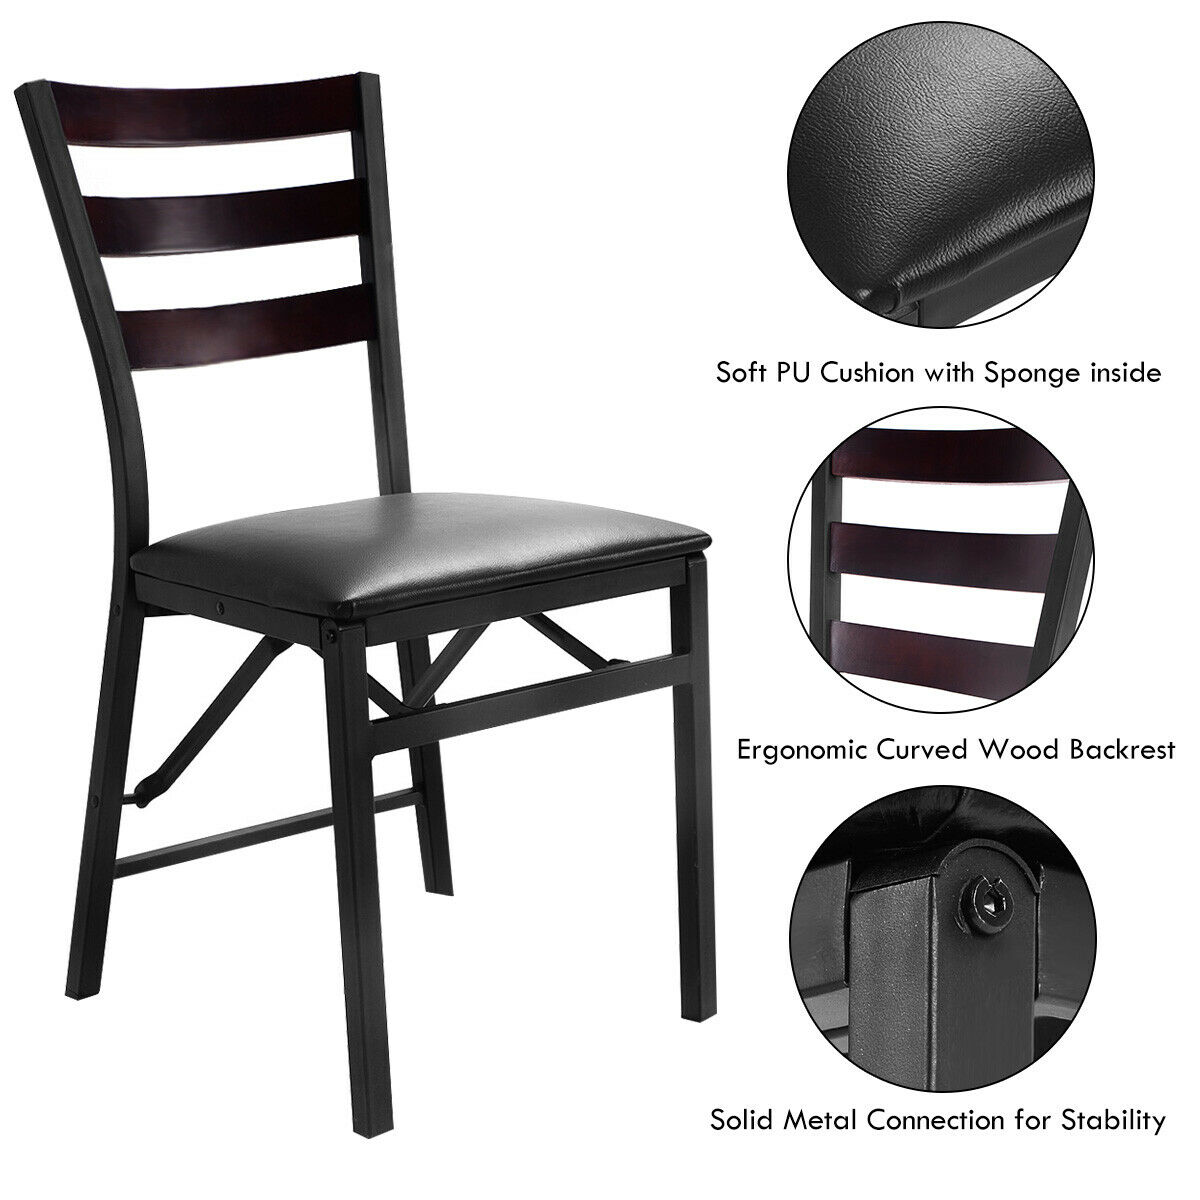 Gymax 2PC Folding Chair Home Restaurant Furniture - image 6 of 8